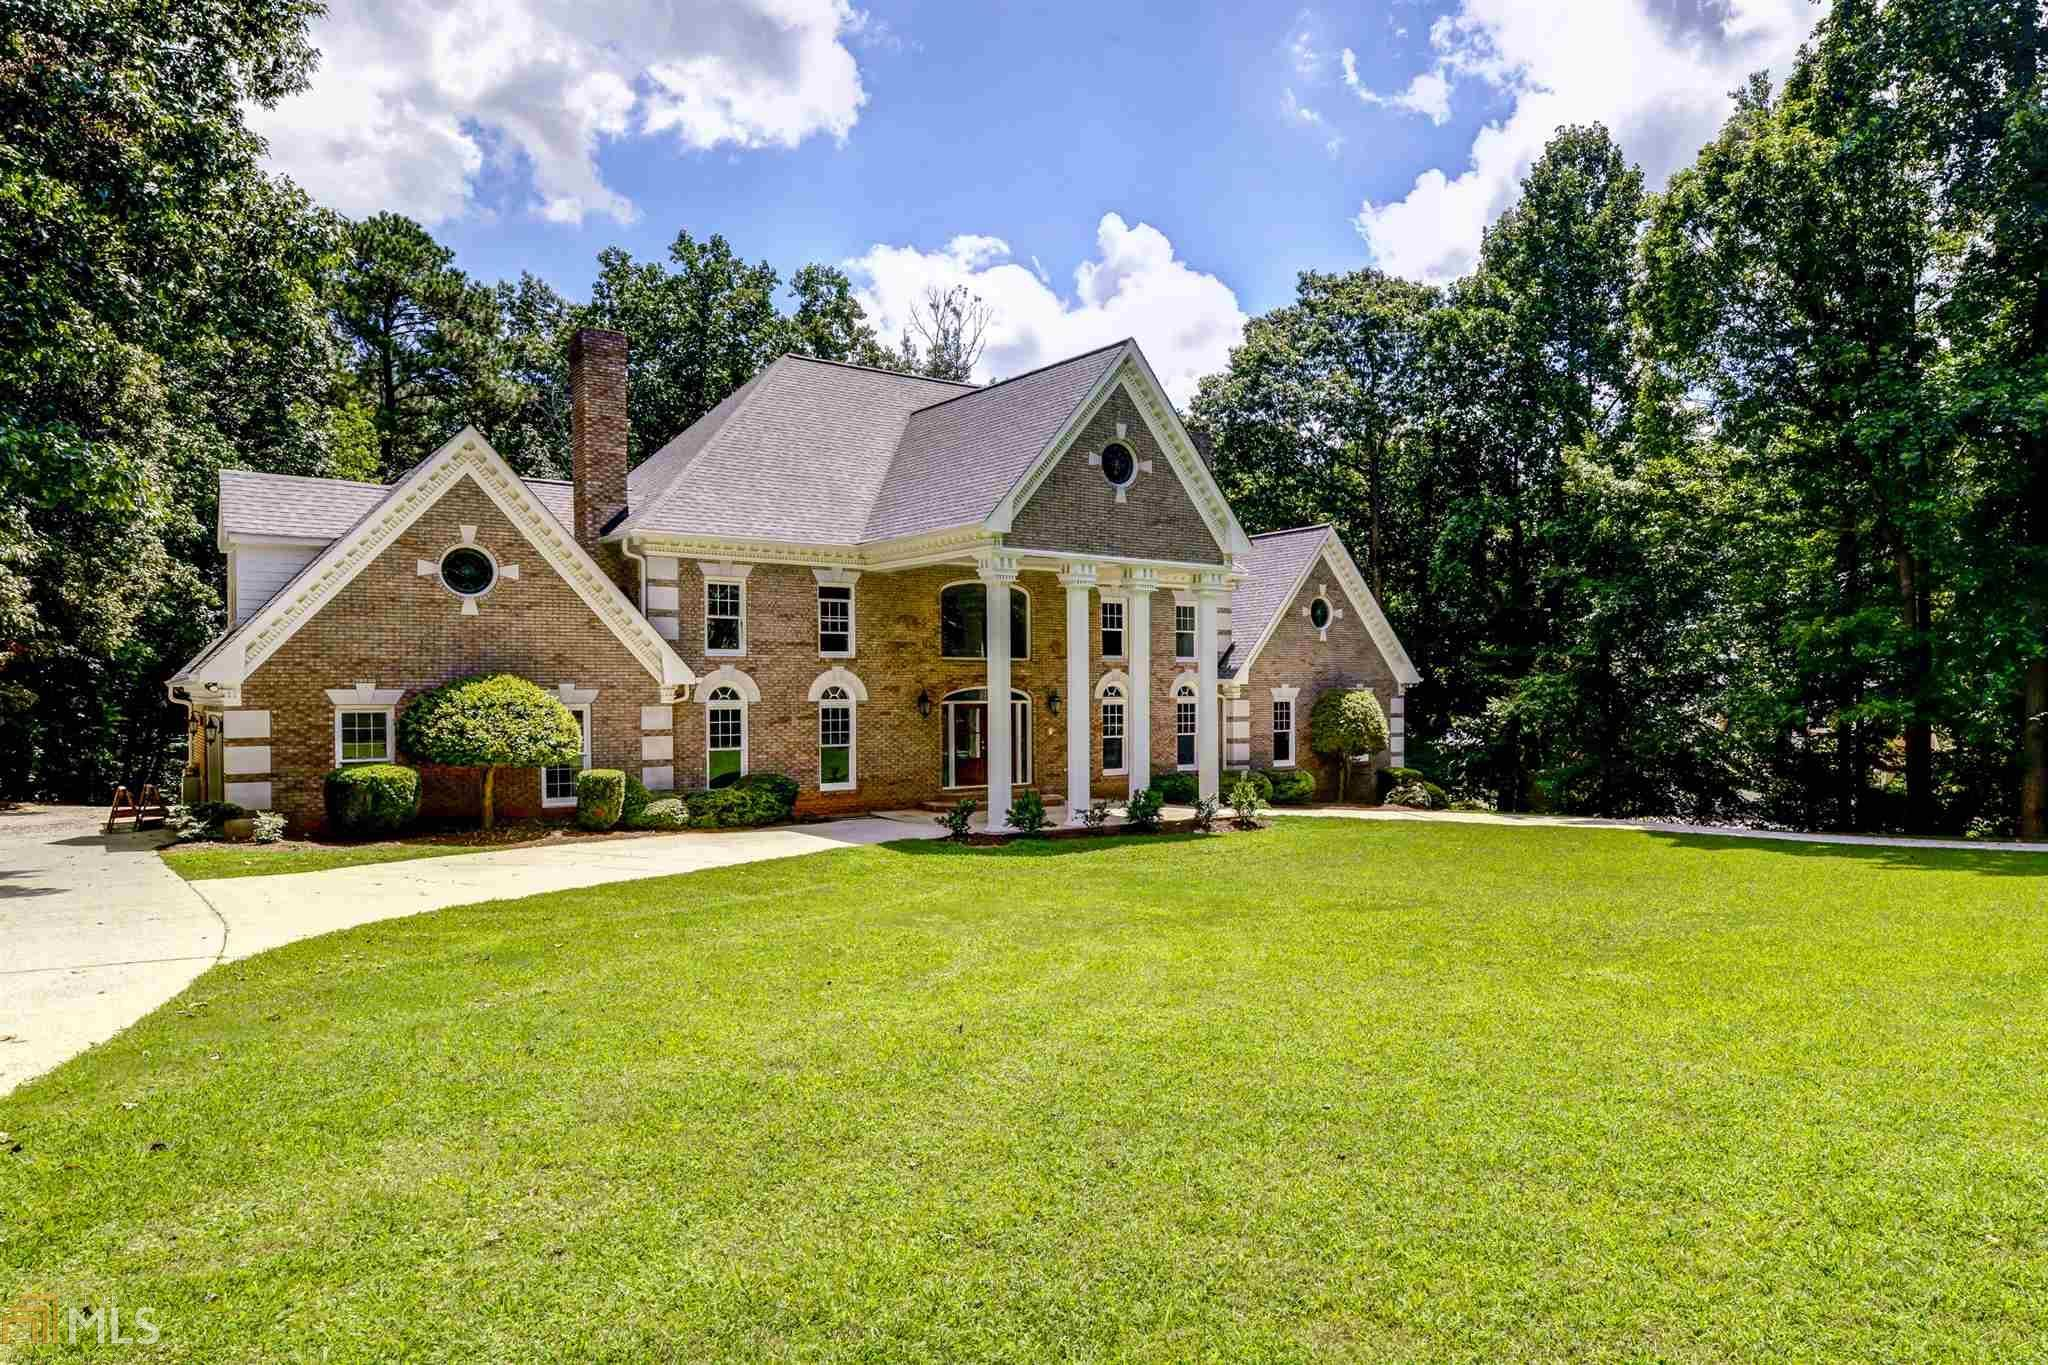 Wondrous 6 Bed 8 Bath Home In Stone Mountain For 734 000 Interior Design Ideas Inamawefileorg